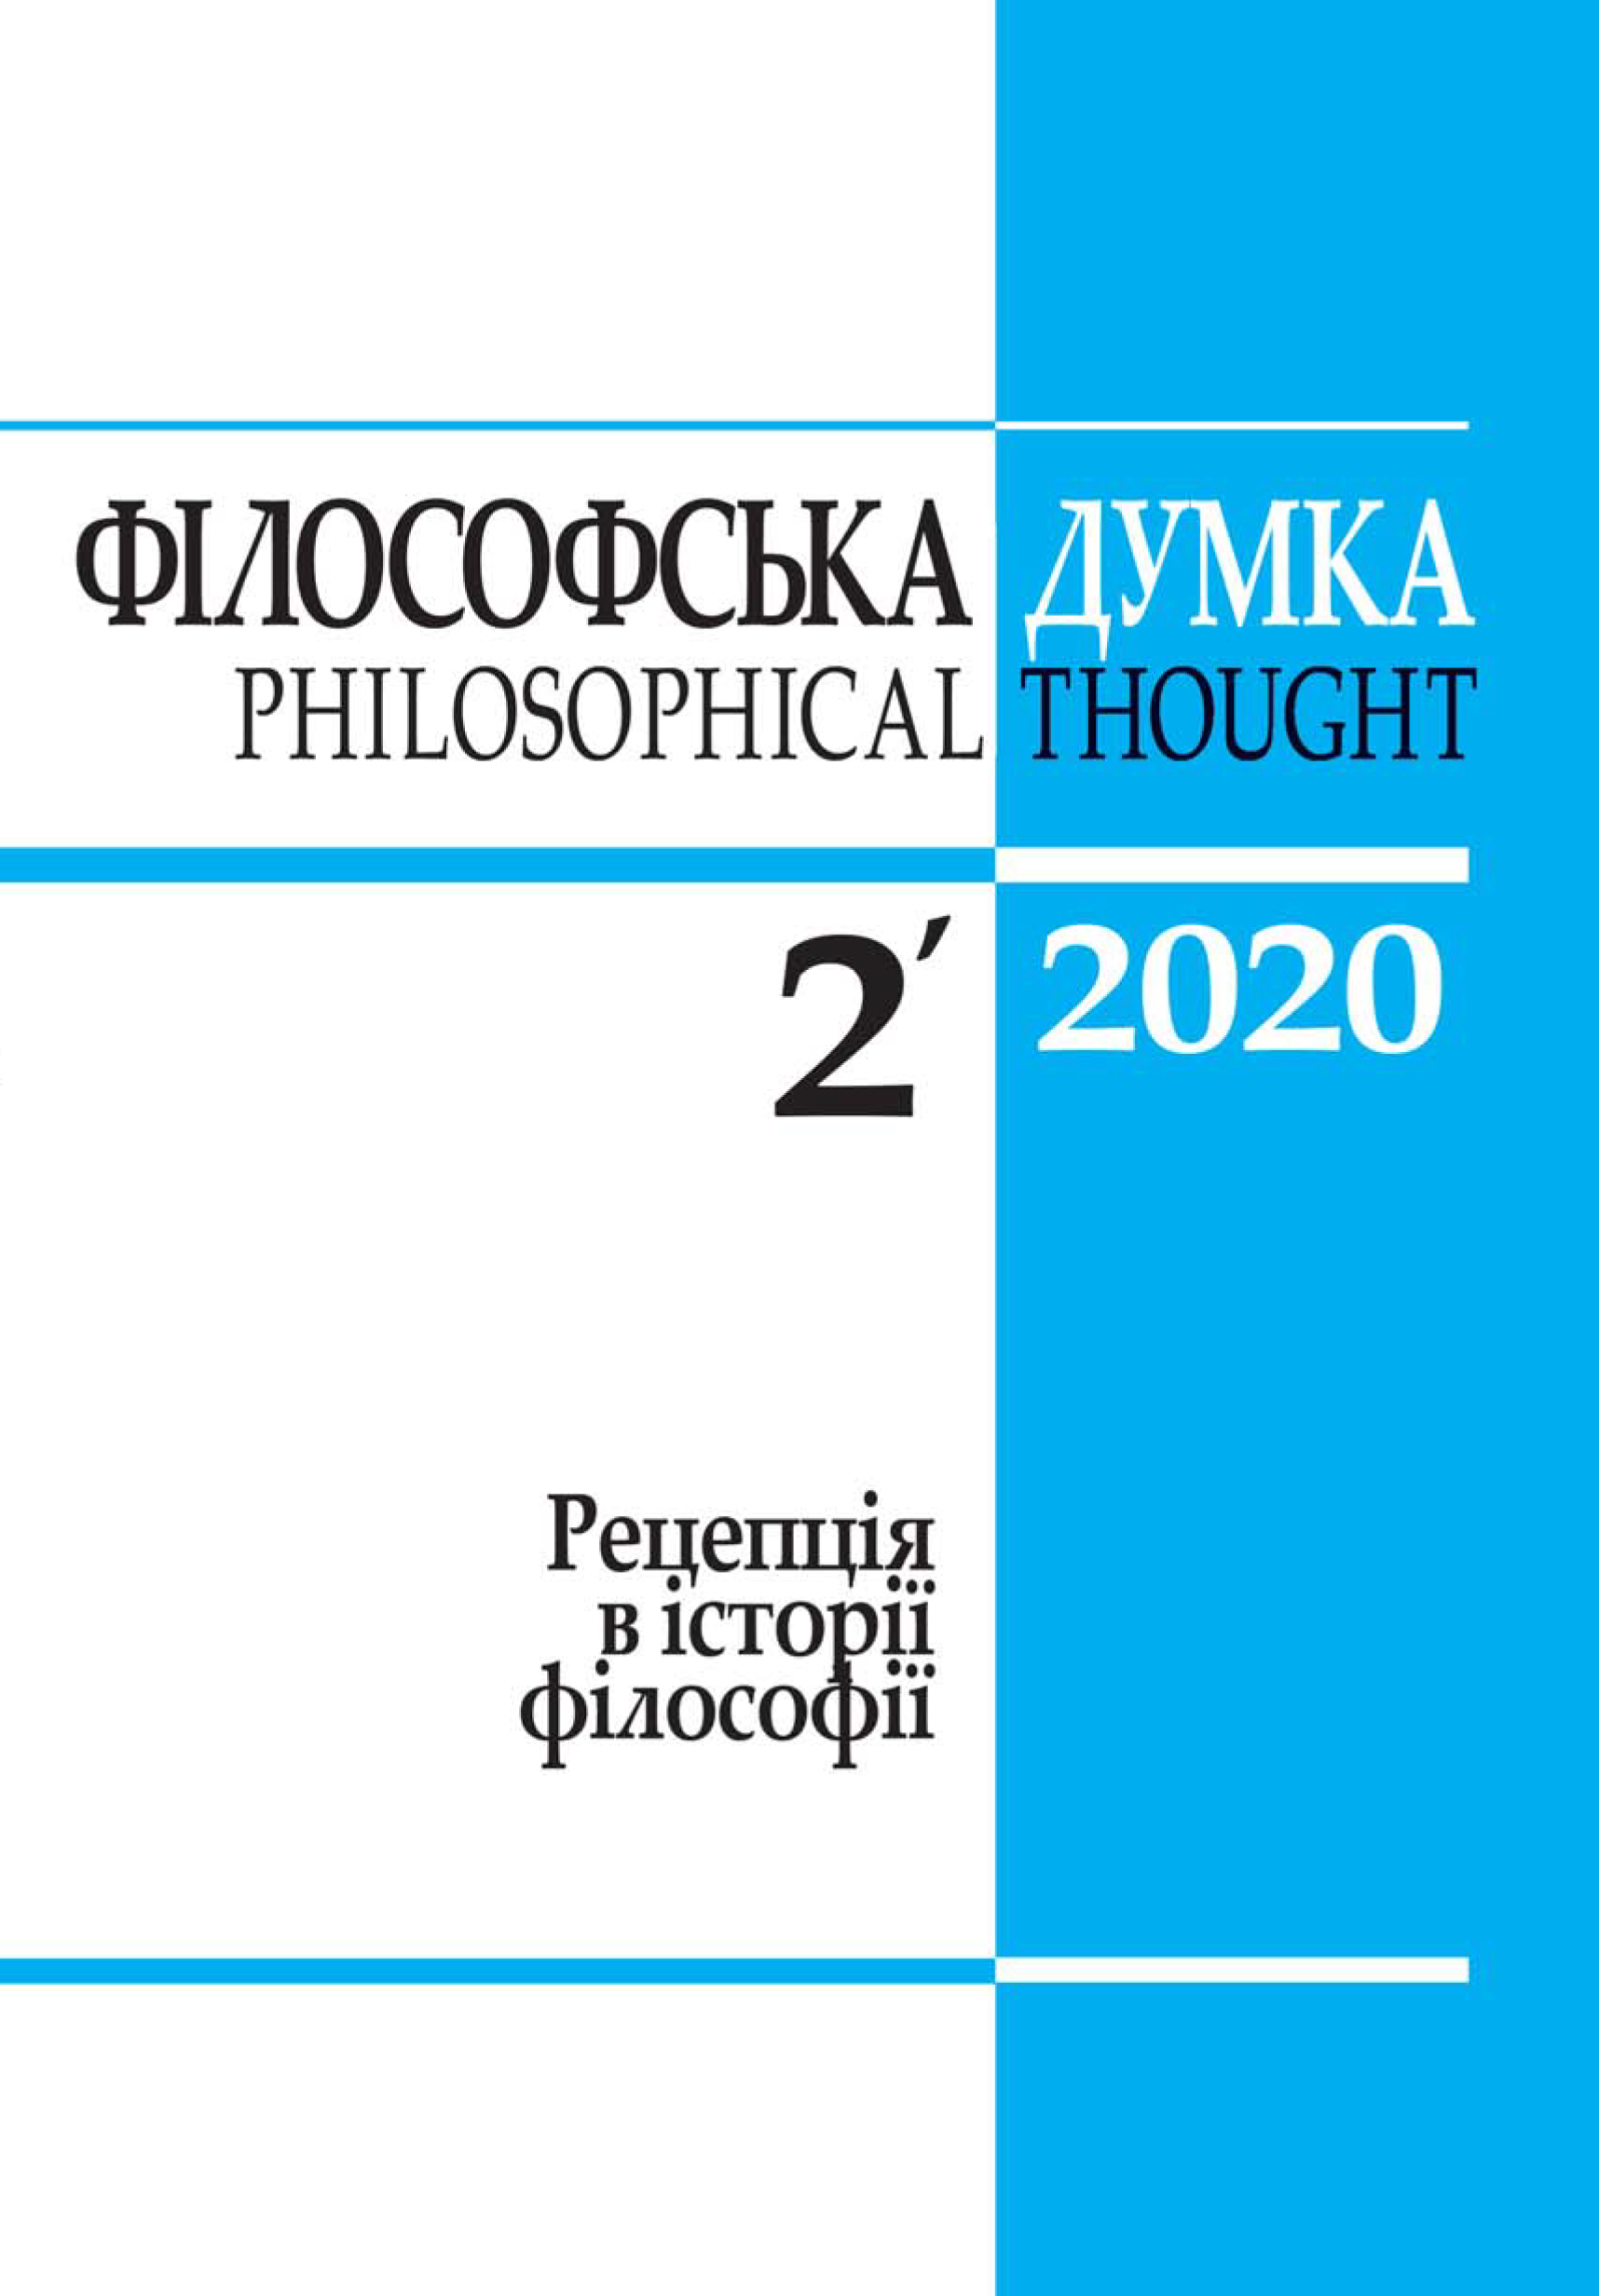 View No. 2 (2020): Philosophical thought